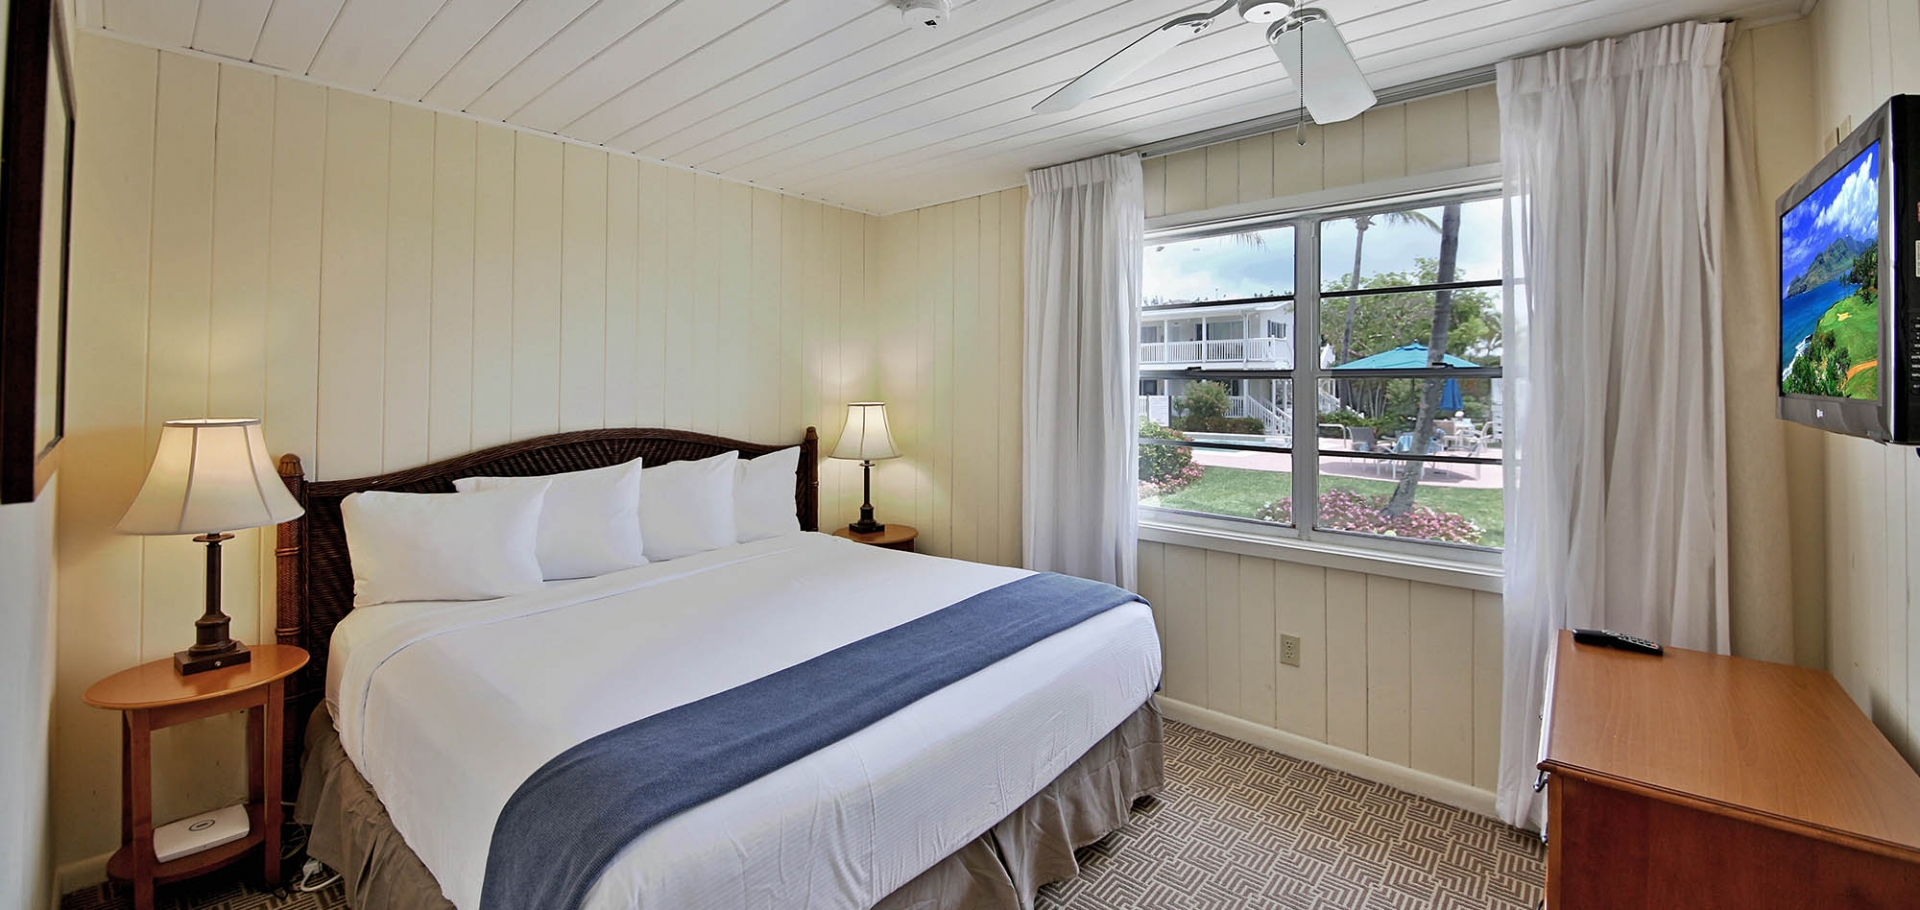 The top rated Seaside Inn Sanibel bedroom